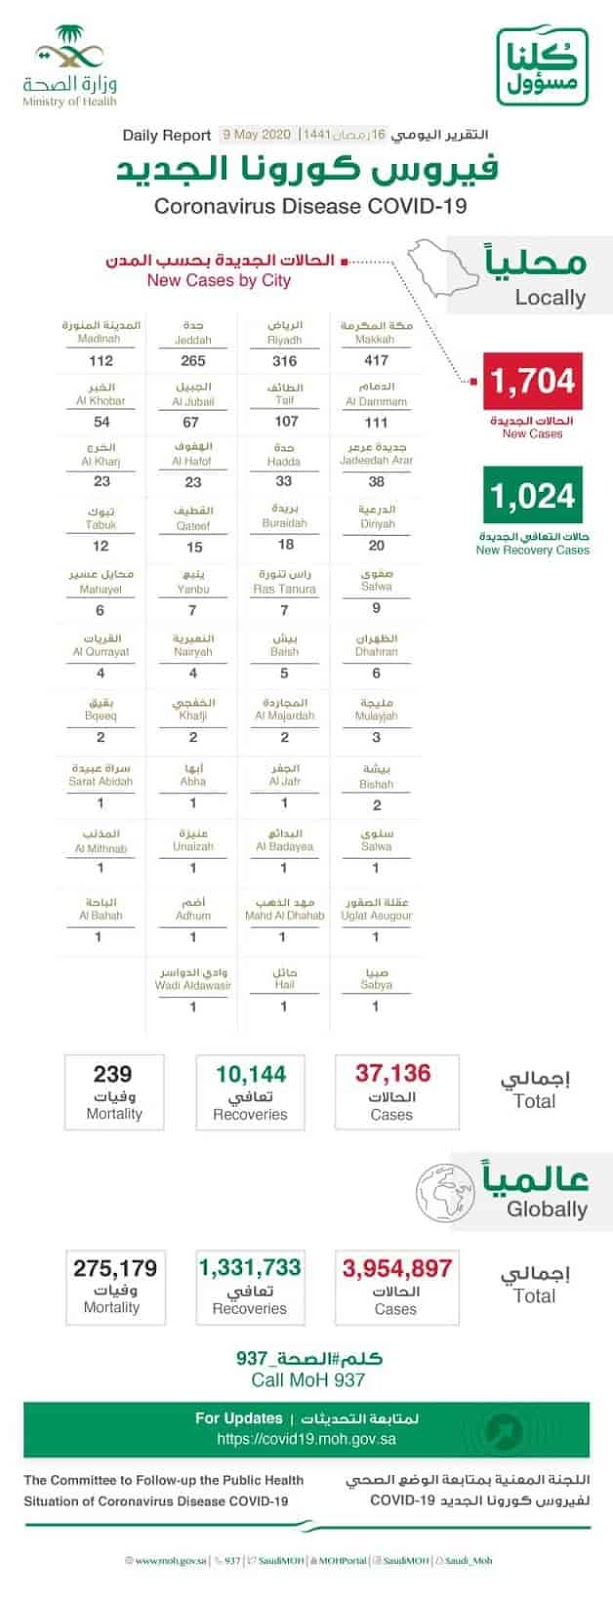 10,144 Recoveries of total 37,136 Corona infections in Saudi Arabia